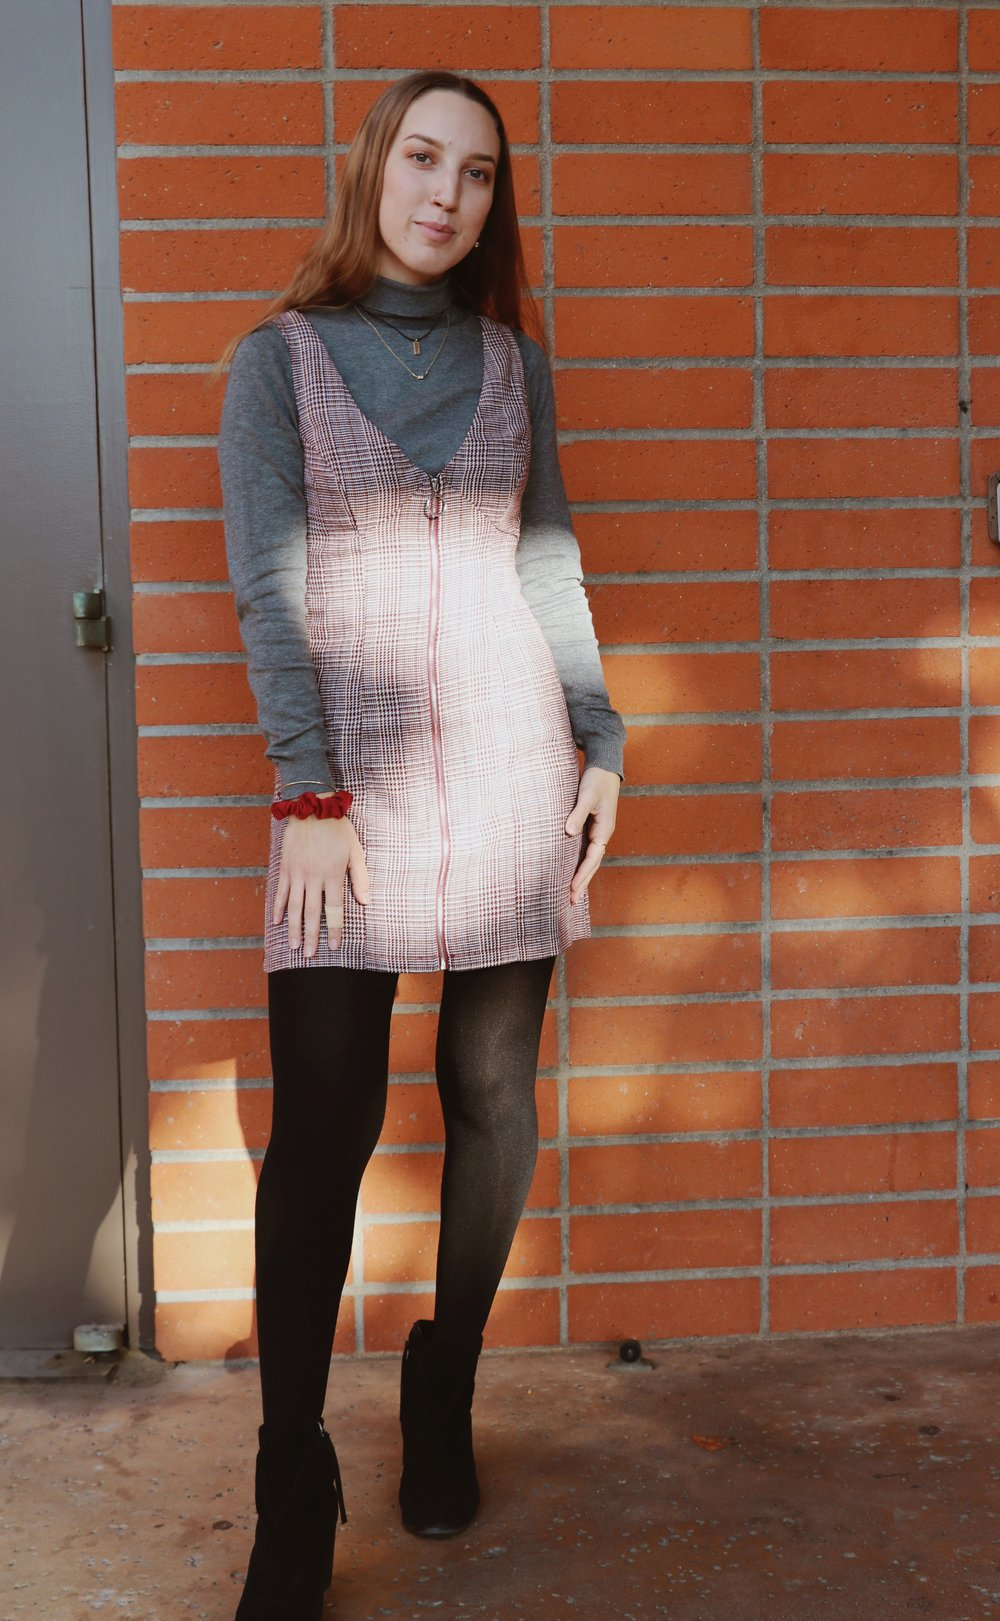 Chaffey student Raylene Camerano dresses in modern chic layers in a plaid dress with a turtleneck and black tights, finishing the look with black booties.